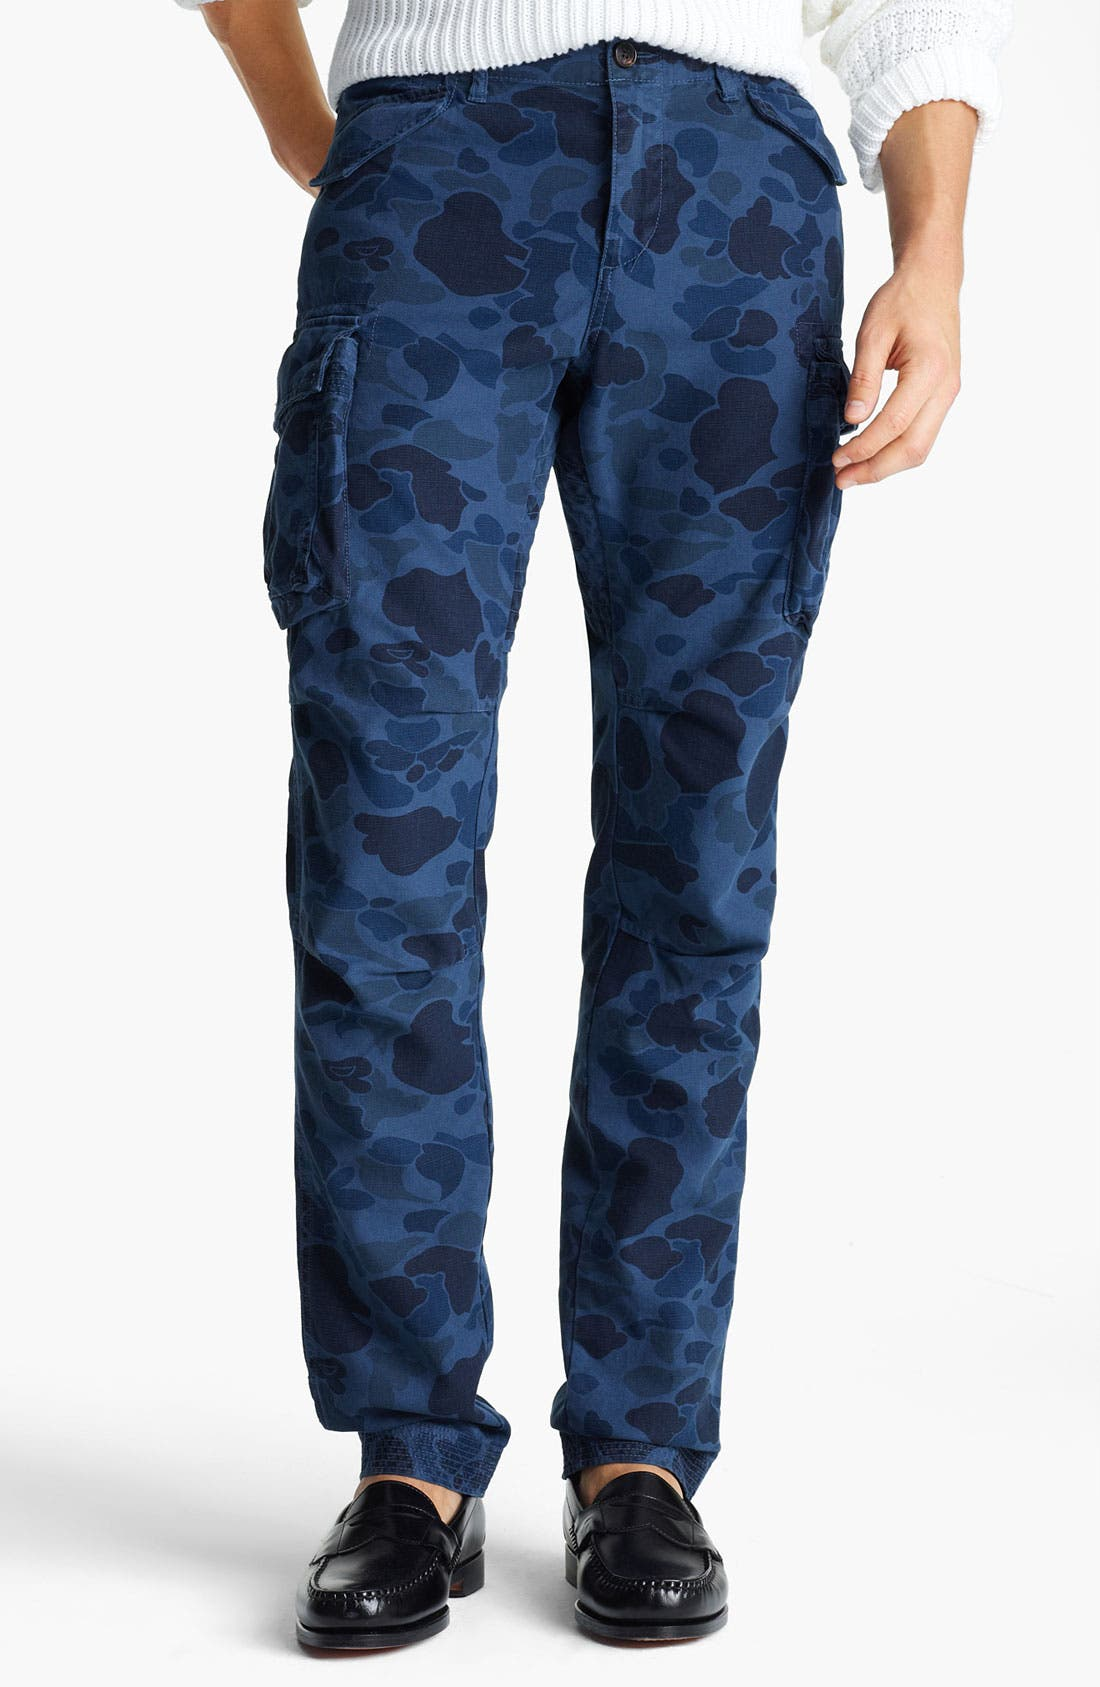 Alternate Image 1 Selected - Gant by Michael Bastian Skinny Camo Cargo Pants